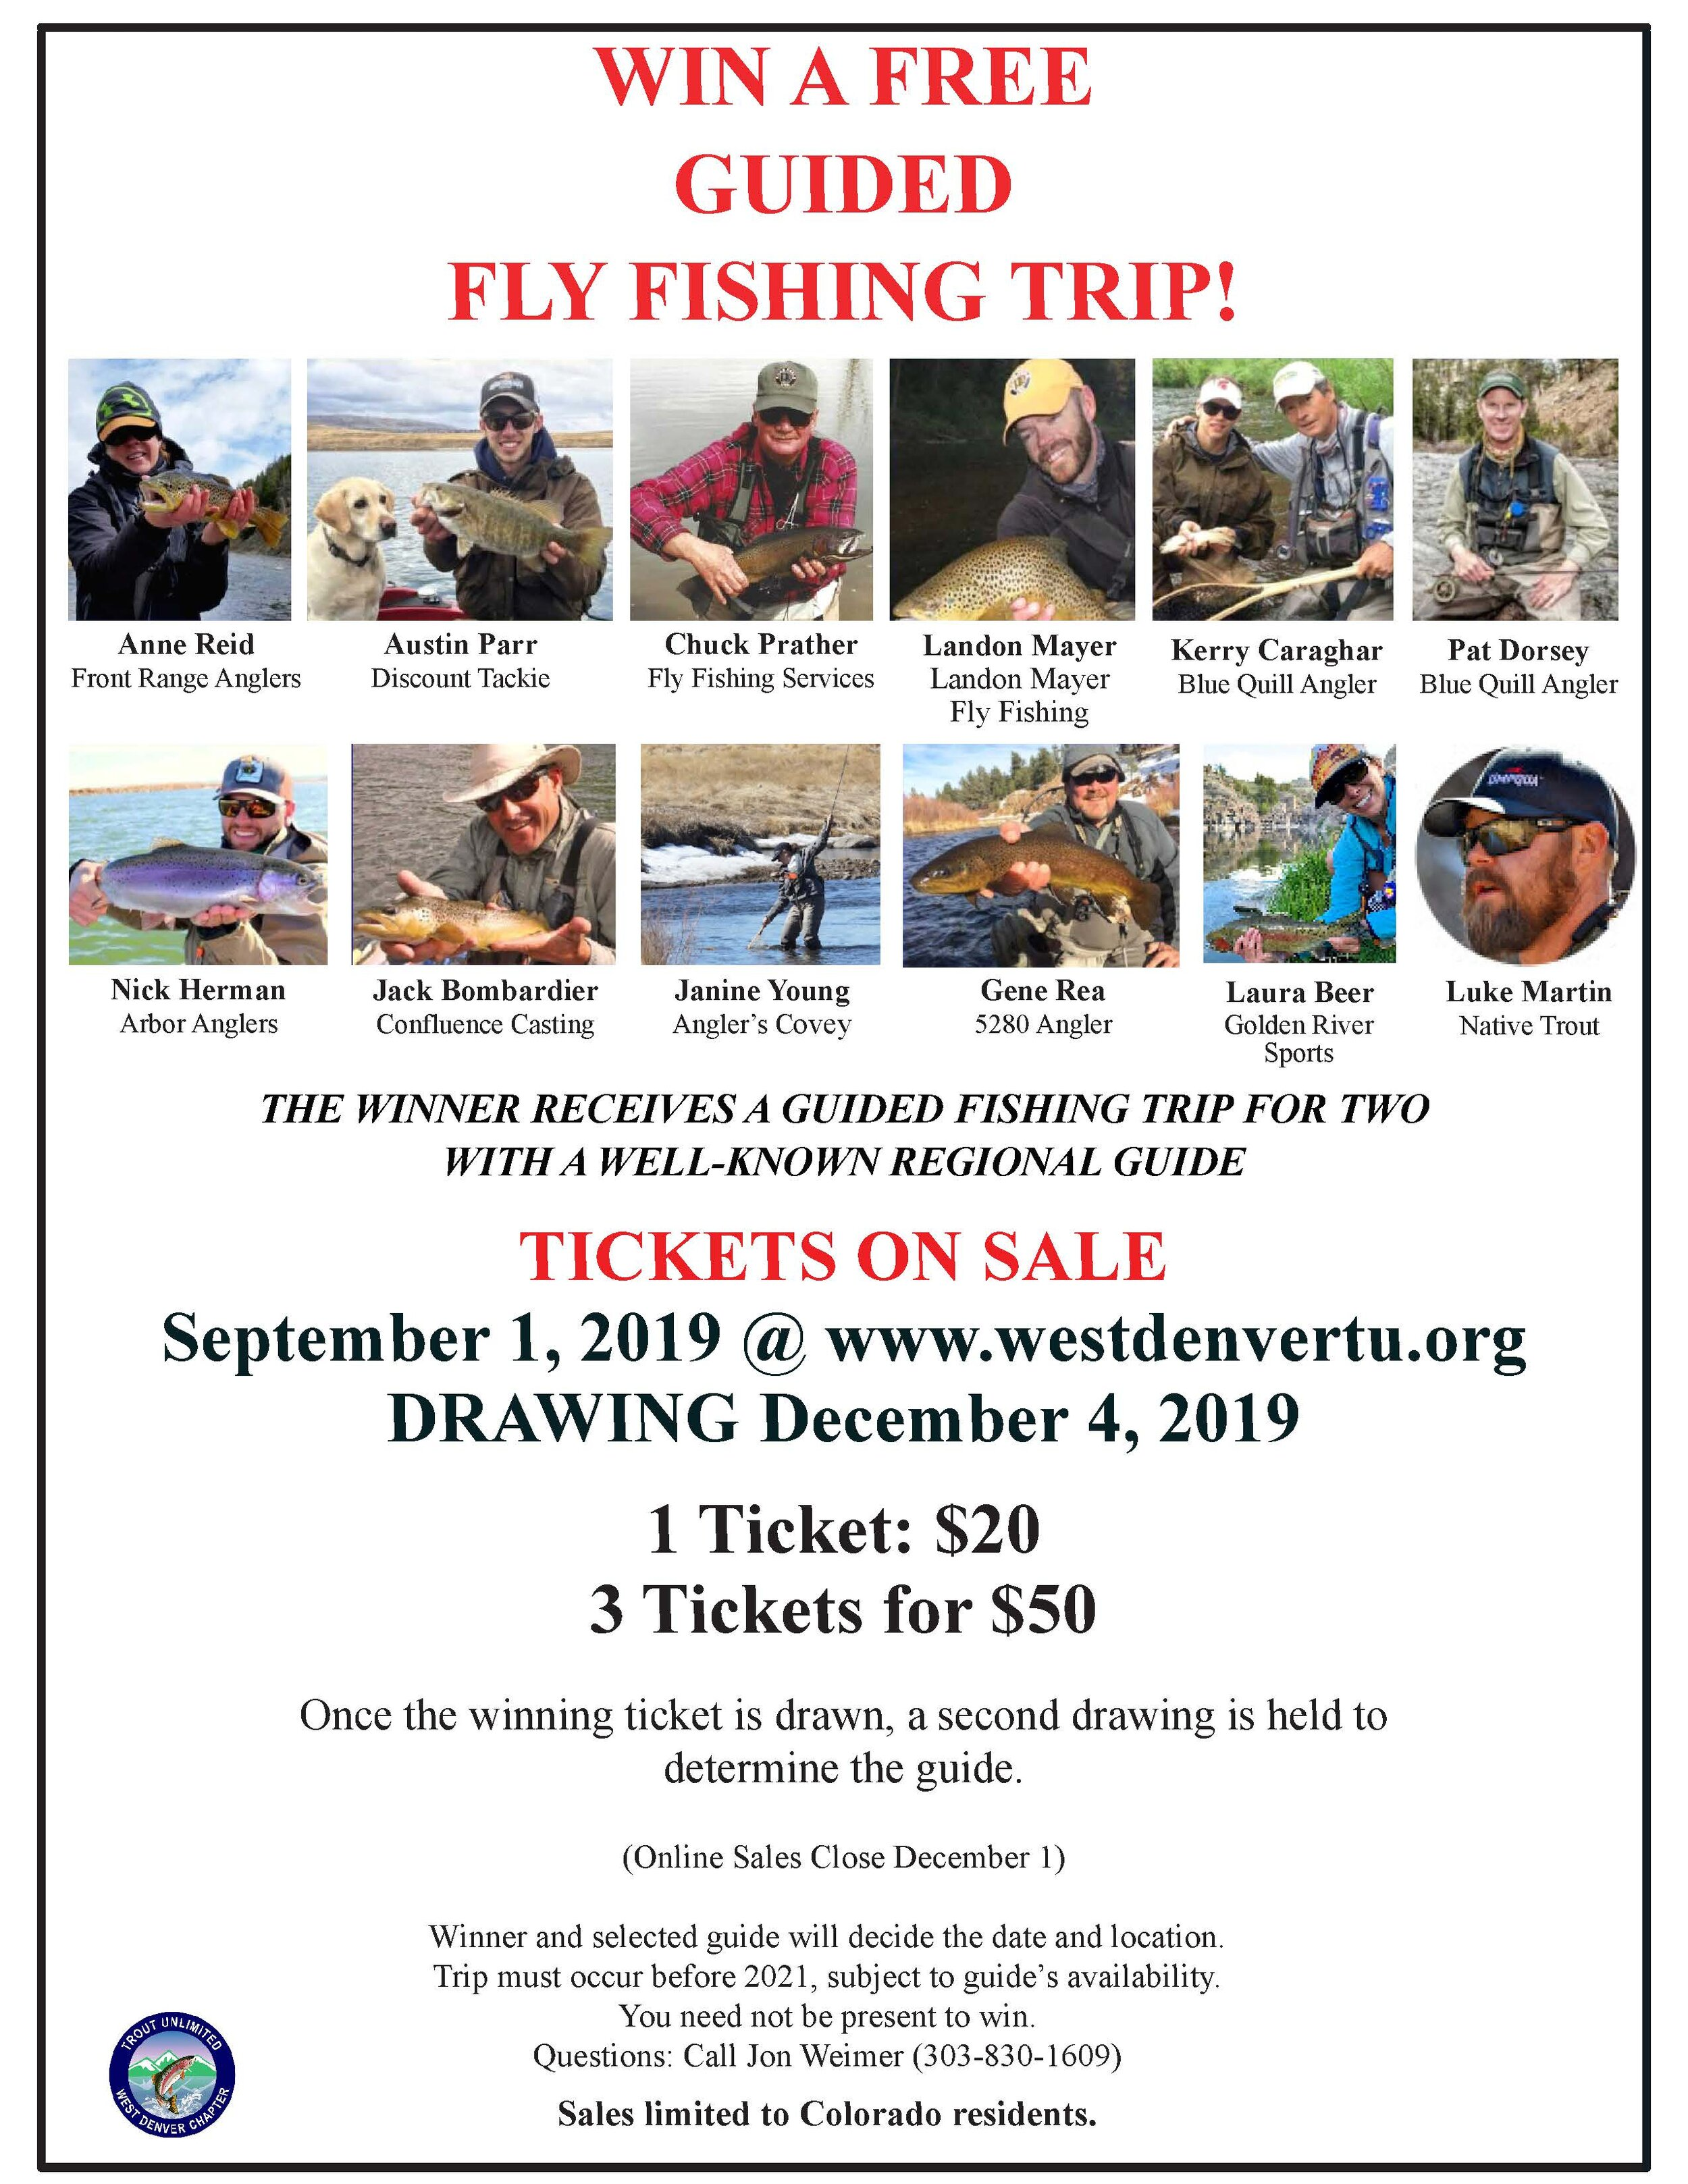 2019 Guided Fly Fishing Trip Poster 8-13-19 A (1).jpg